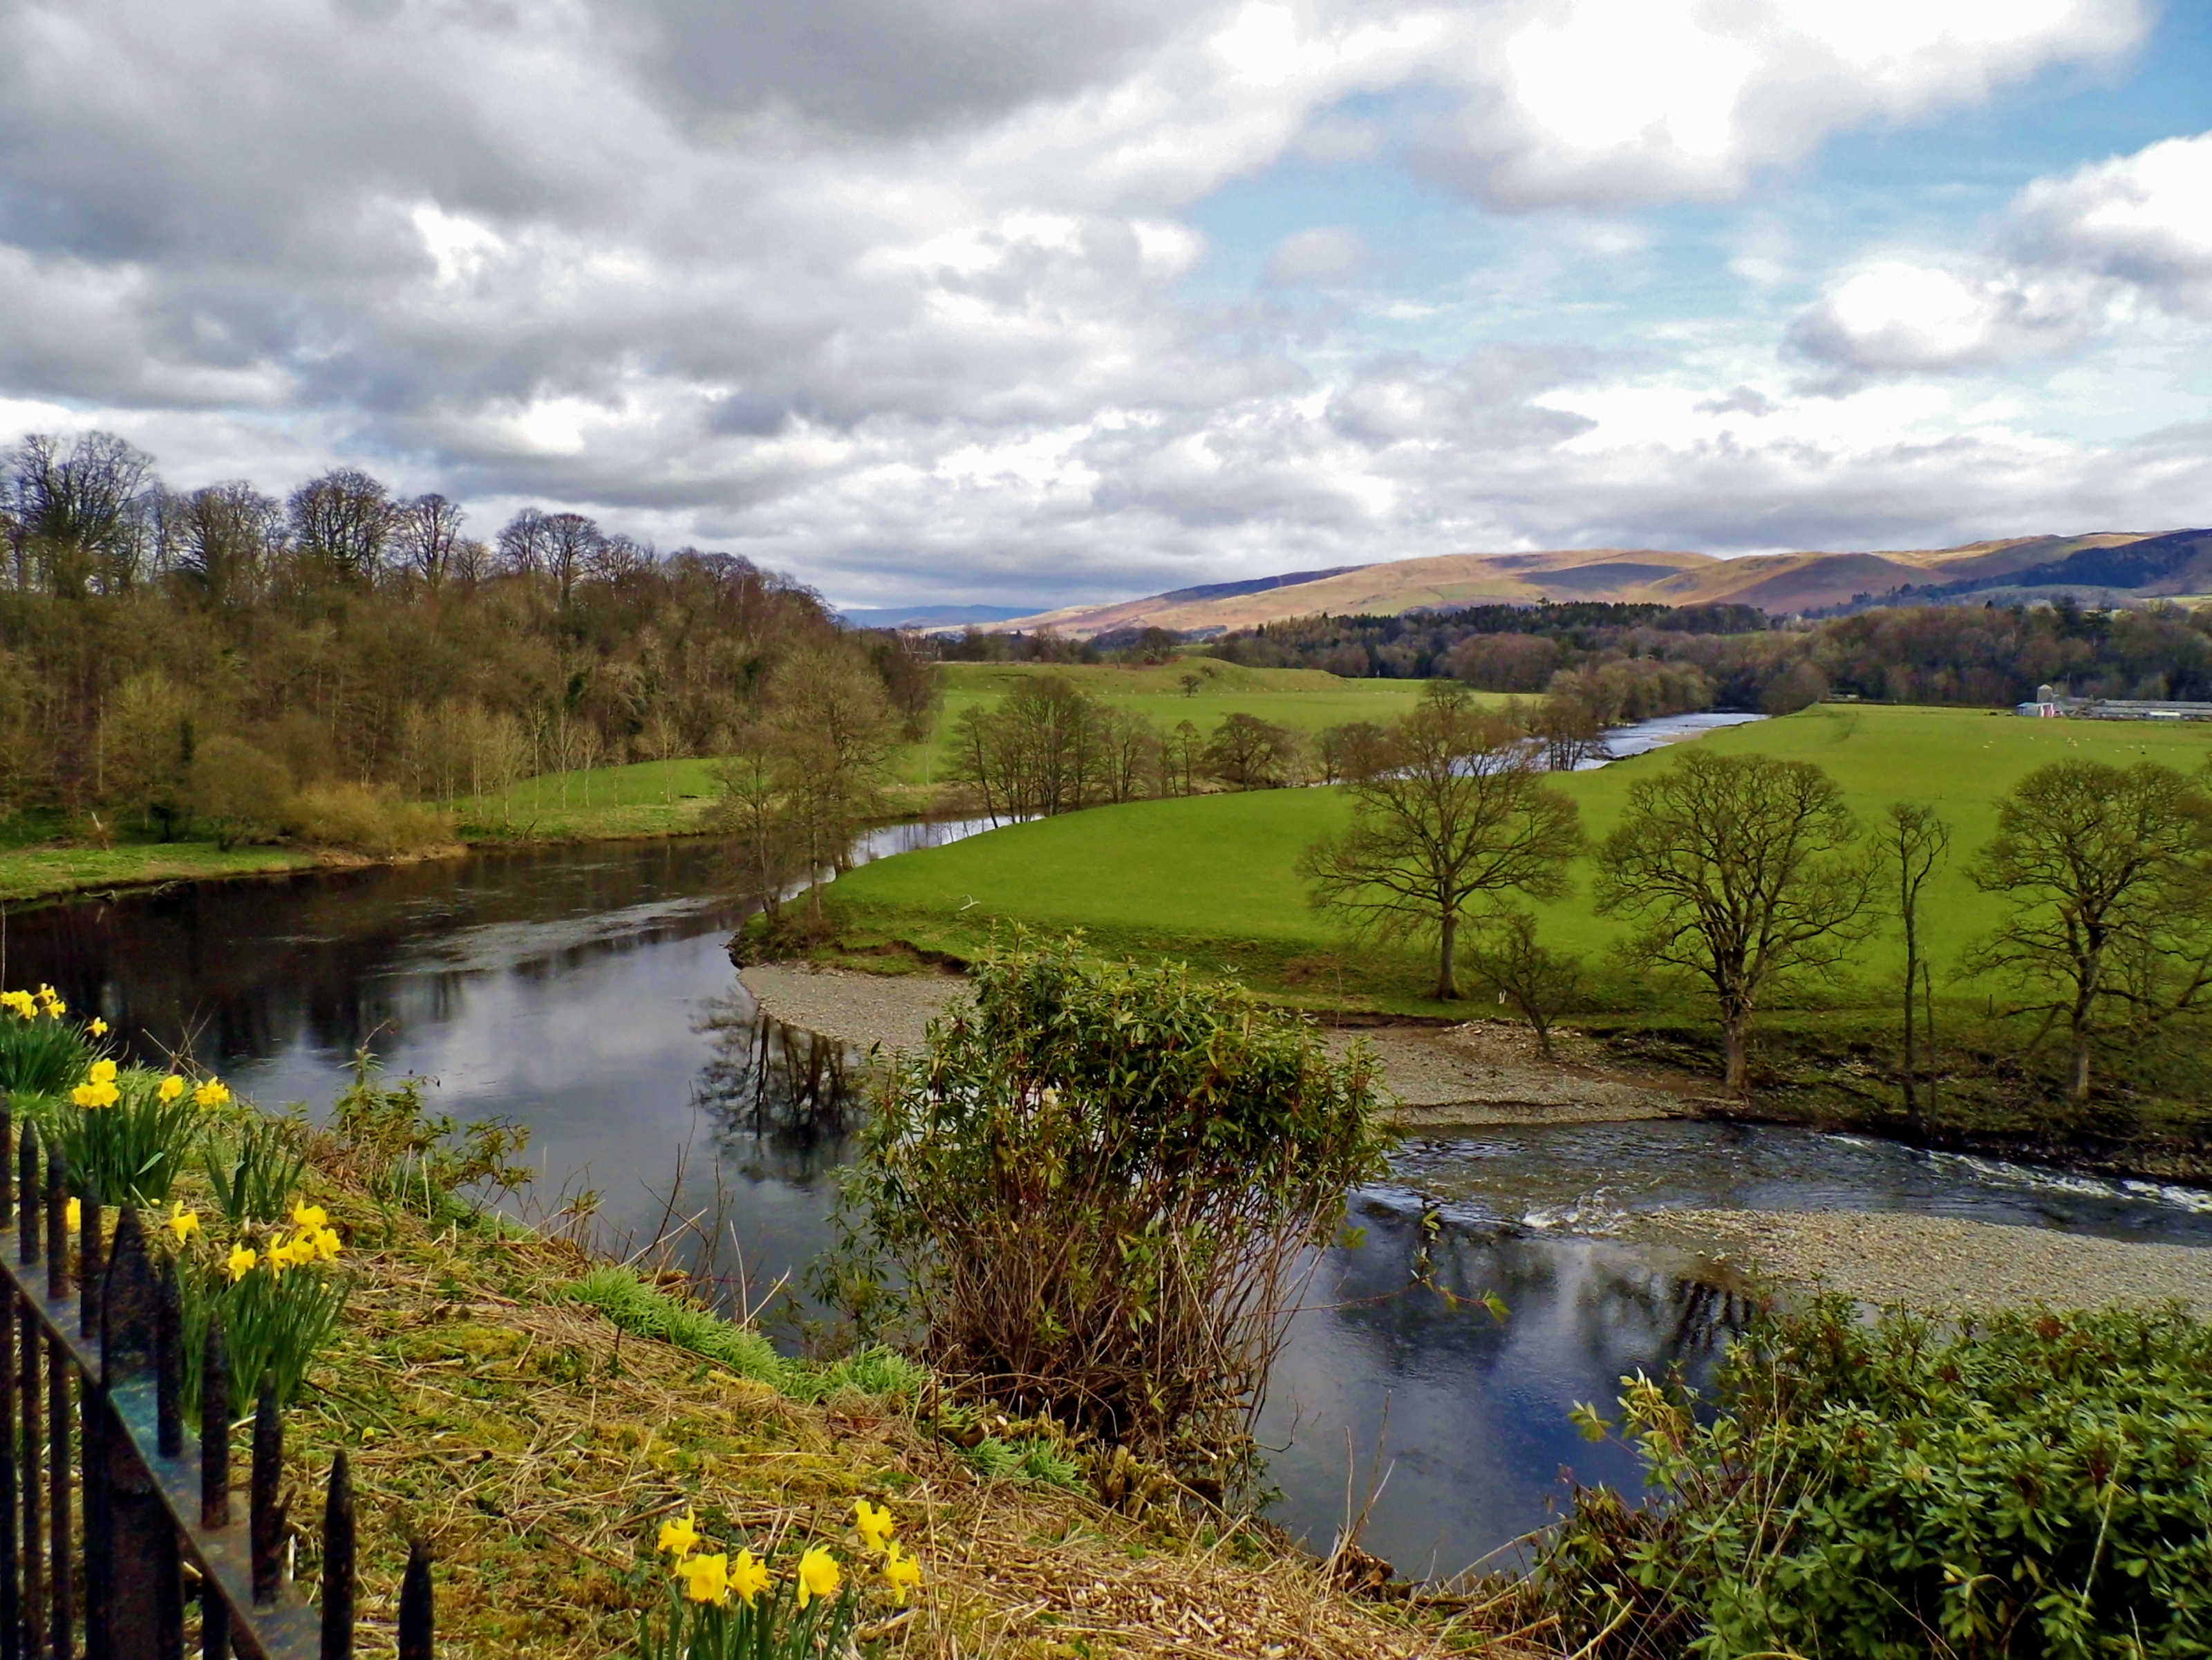 Ruskin's View... The River Lune, Kirkby Lonsdale.